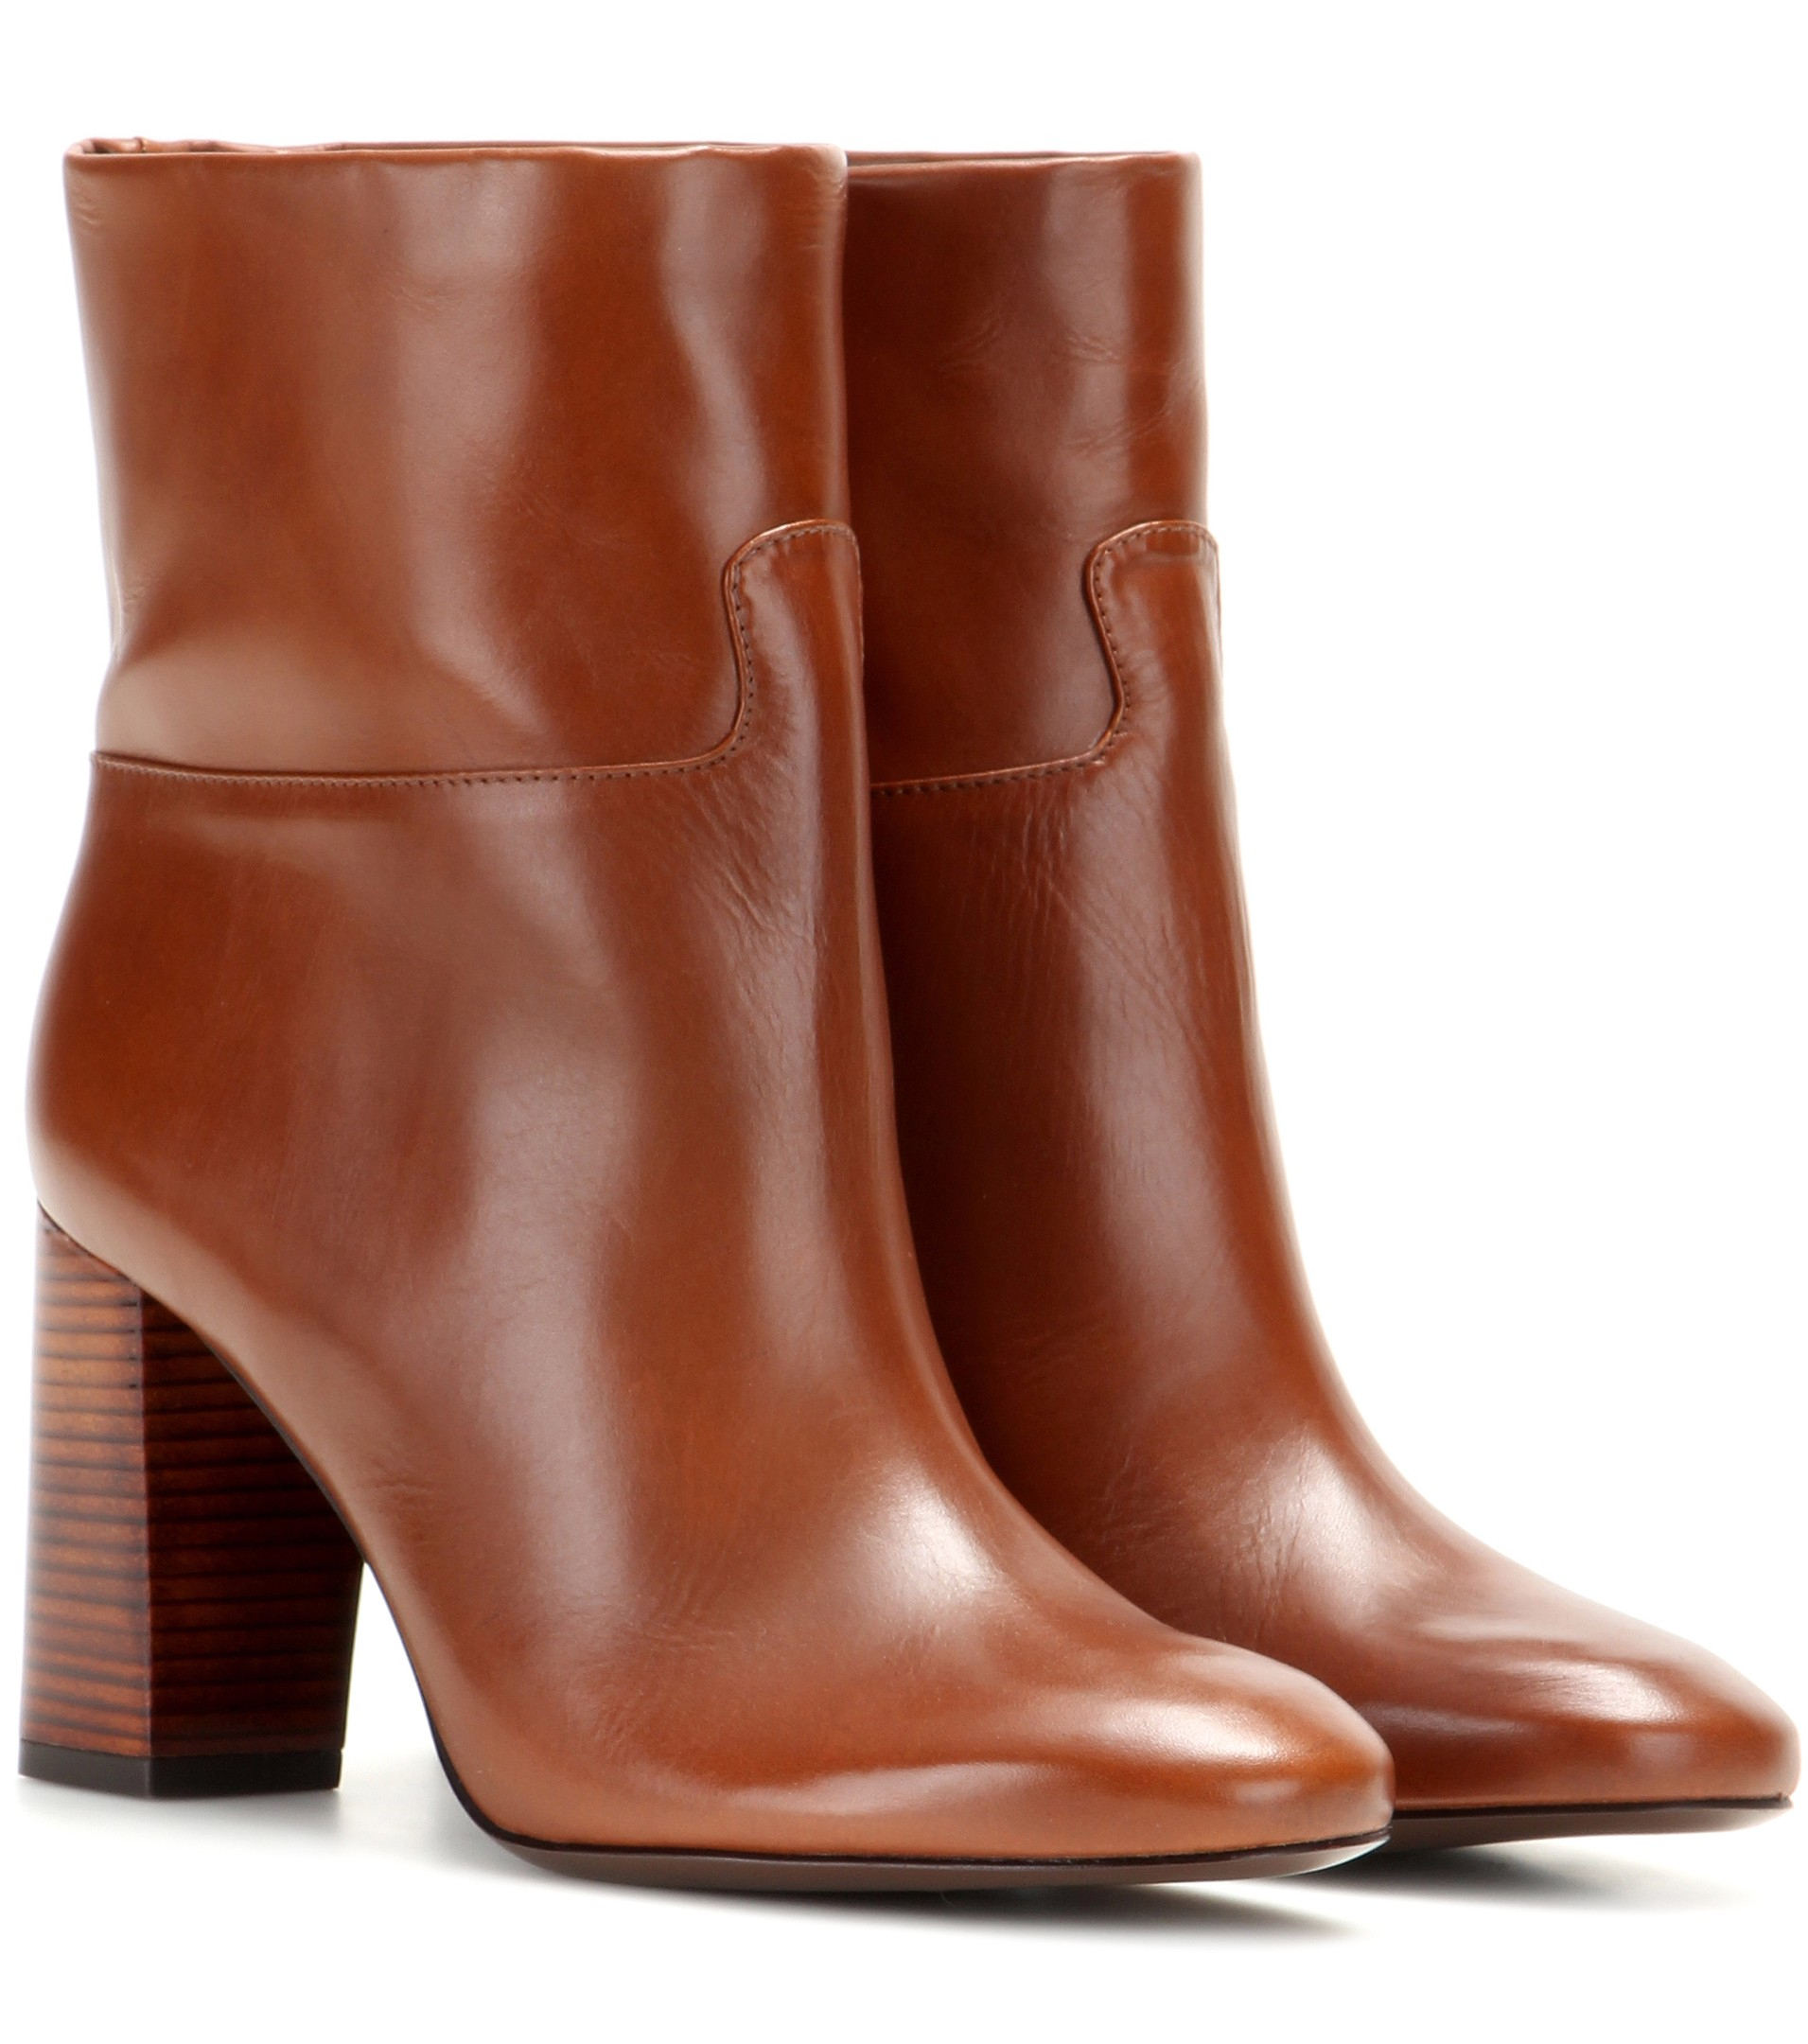 0eb6c757d9352 Lyst - Tory Burch Devon Leather Ankle Boots in Brown